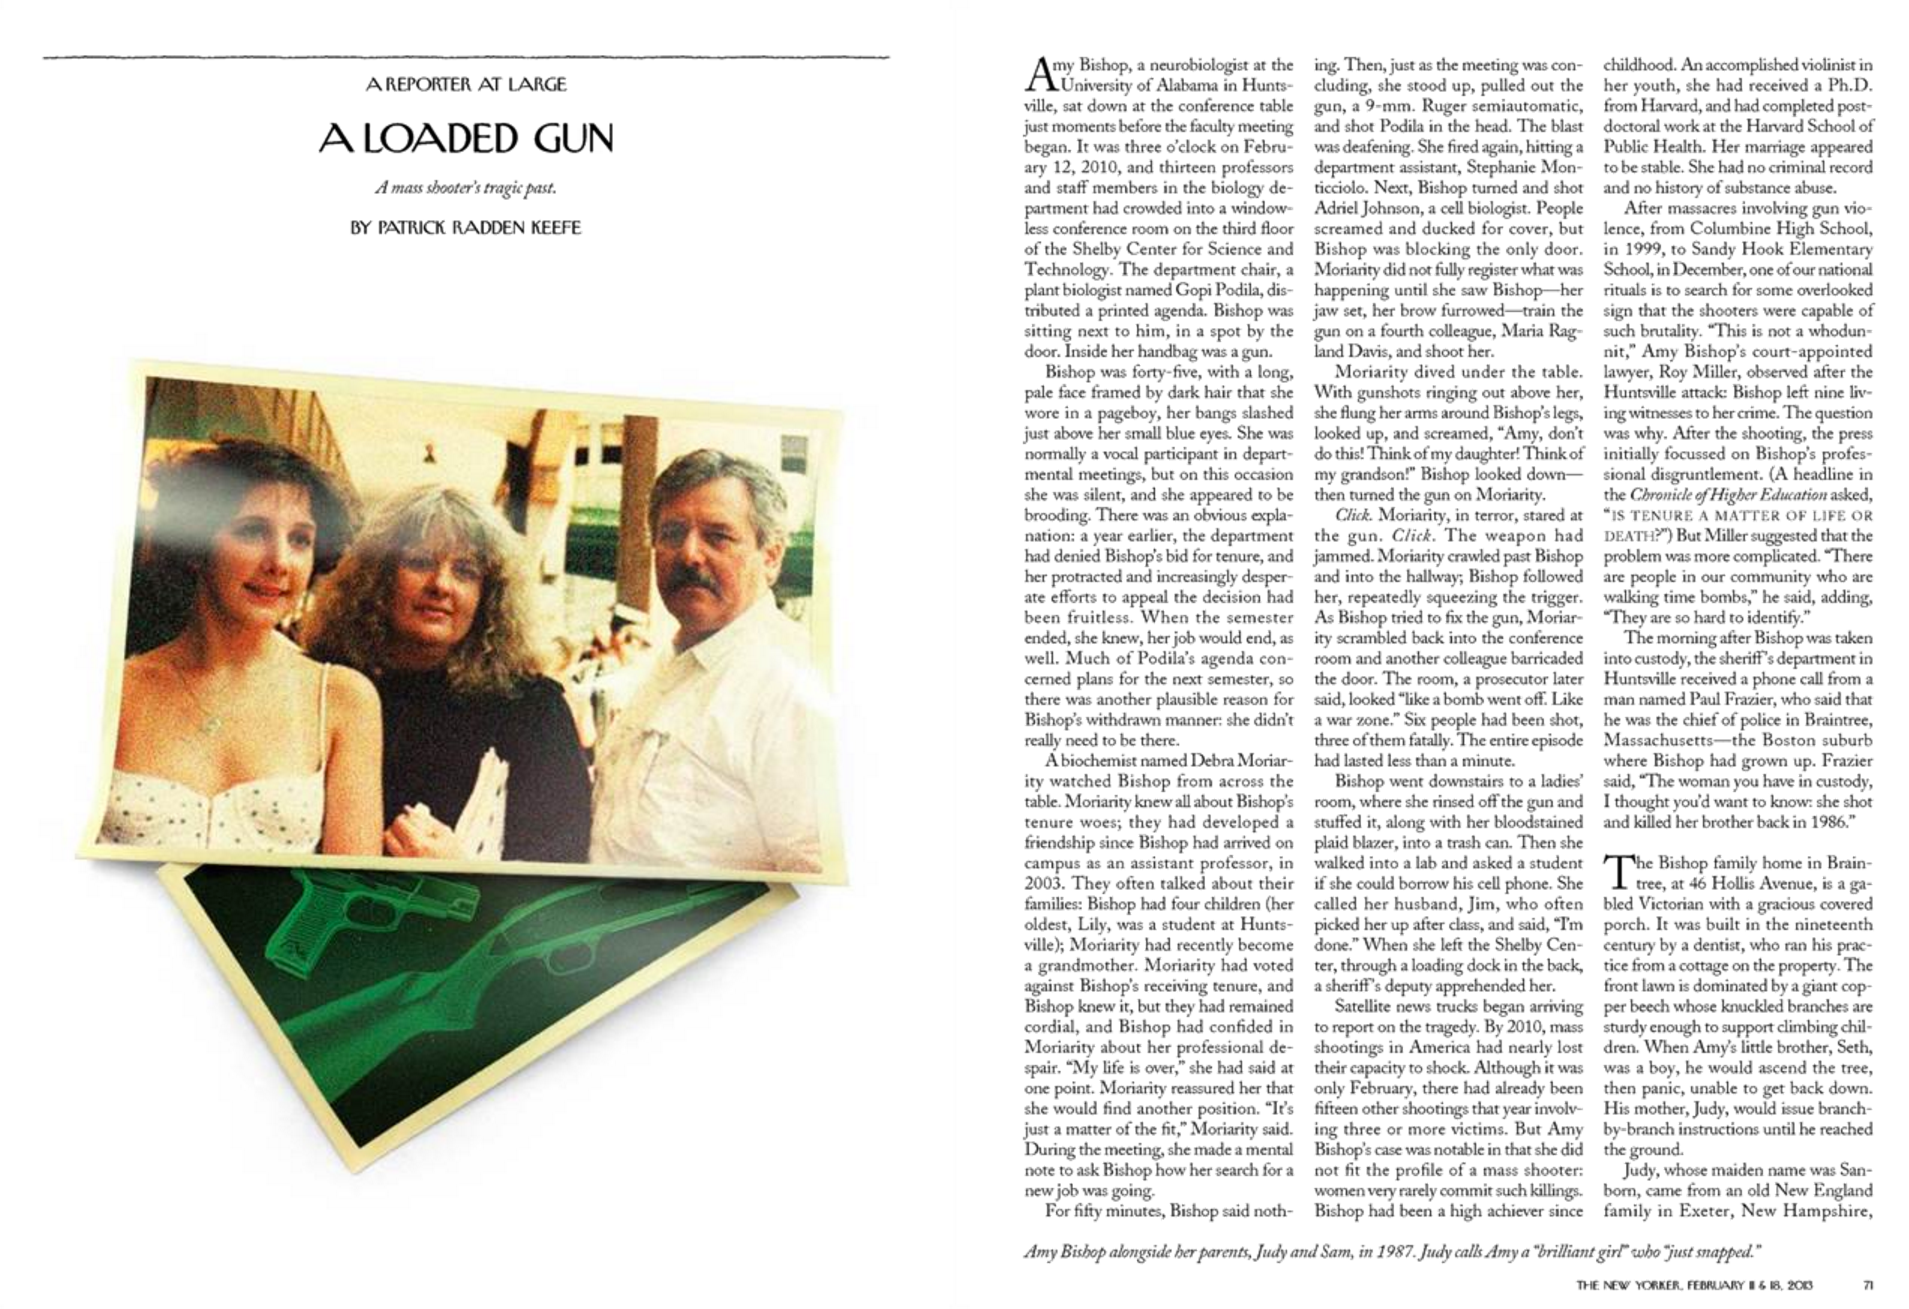 """""""A Loaded Gun,"""" The New Yorker, February 11 & 18, 2013"""